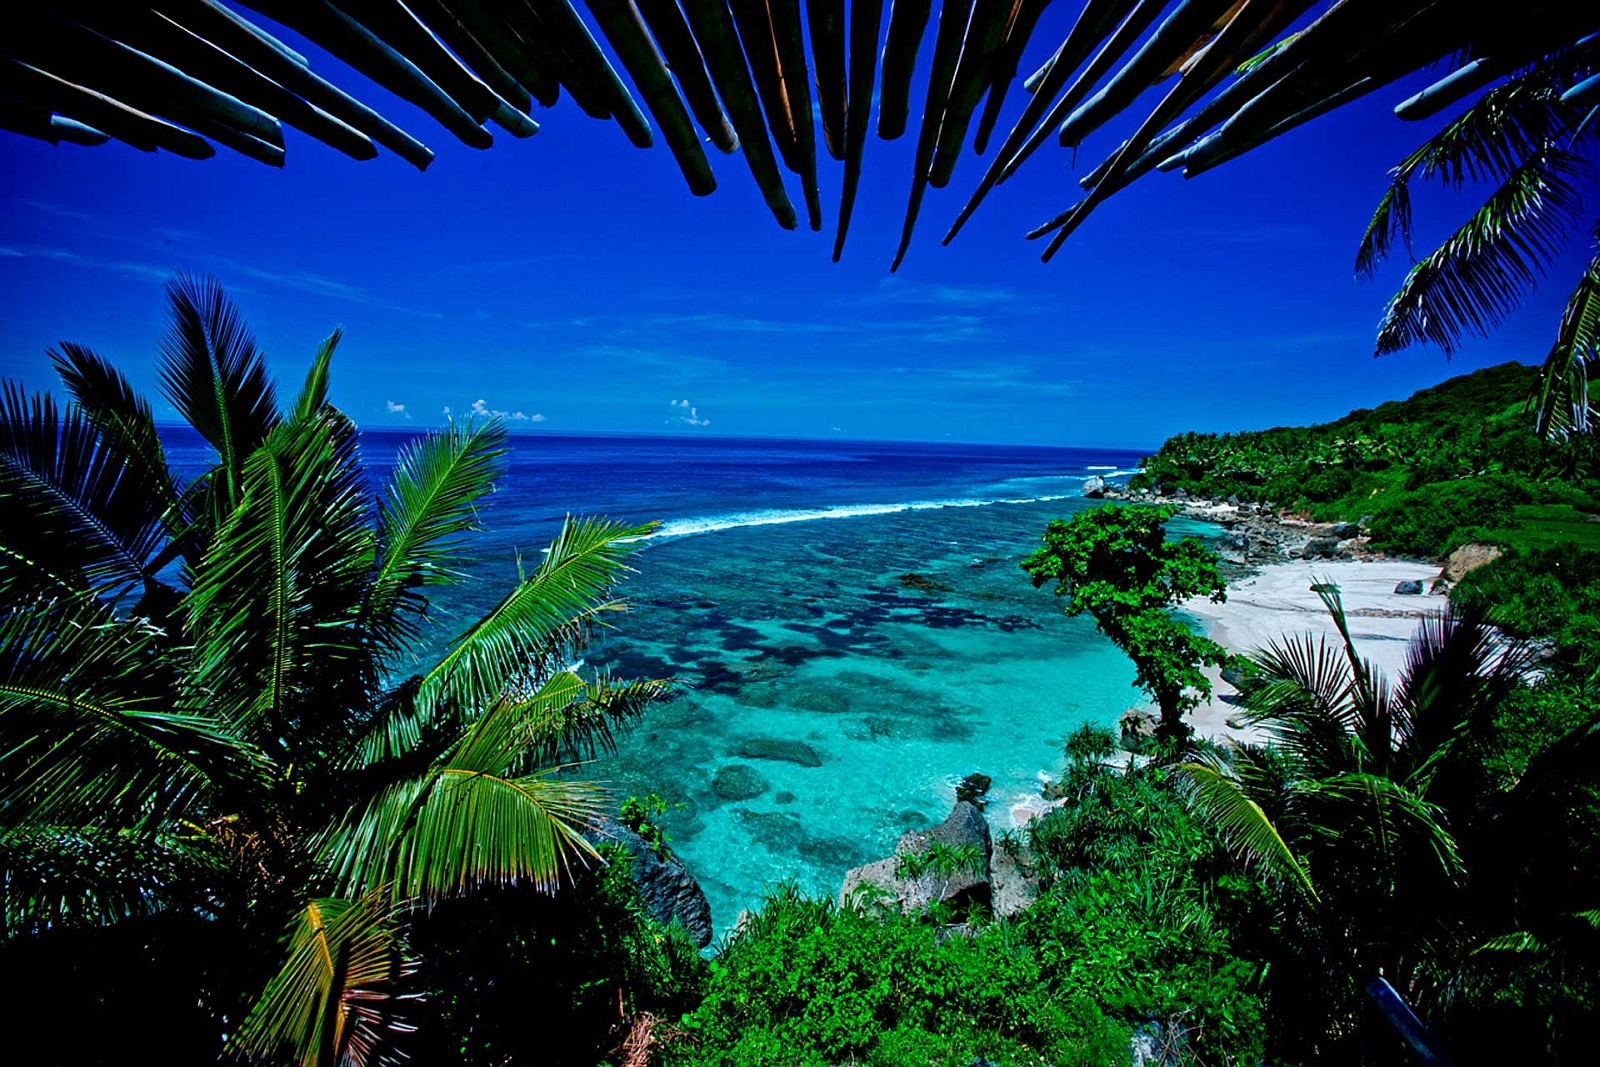 nihiwatu-white-powder-sand-beaches-and-azur-waters.jpg